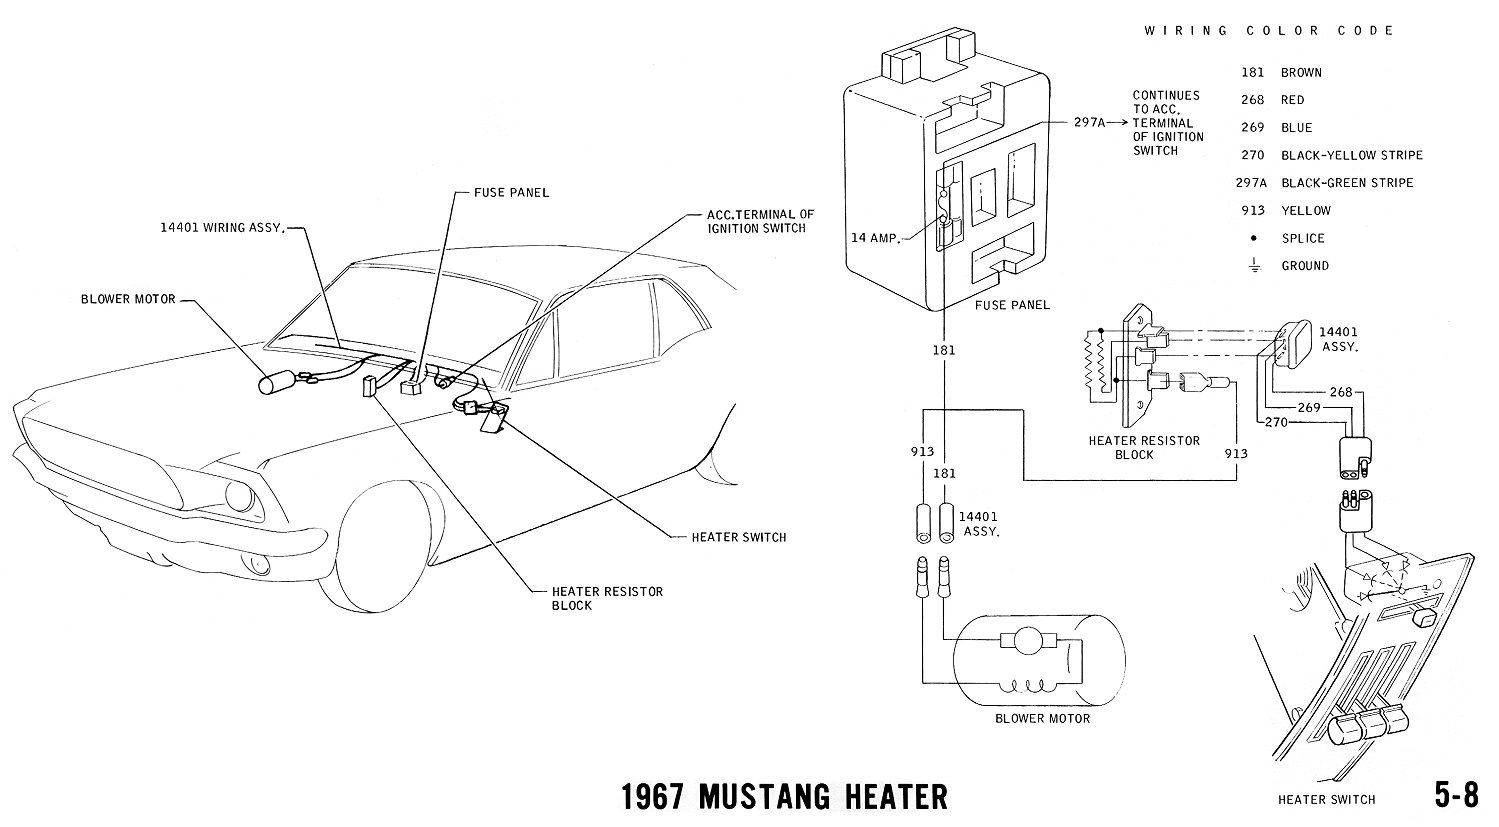 hight resolution of 1966 gto fuse panel diagram images gallery